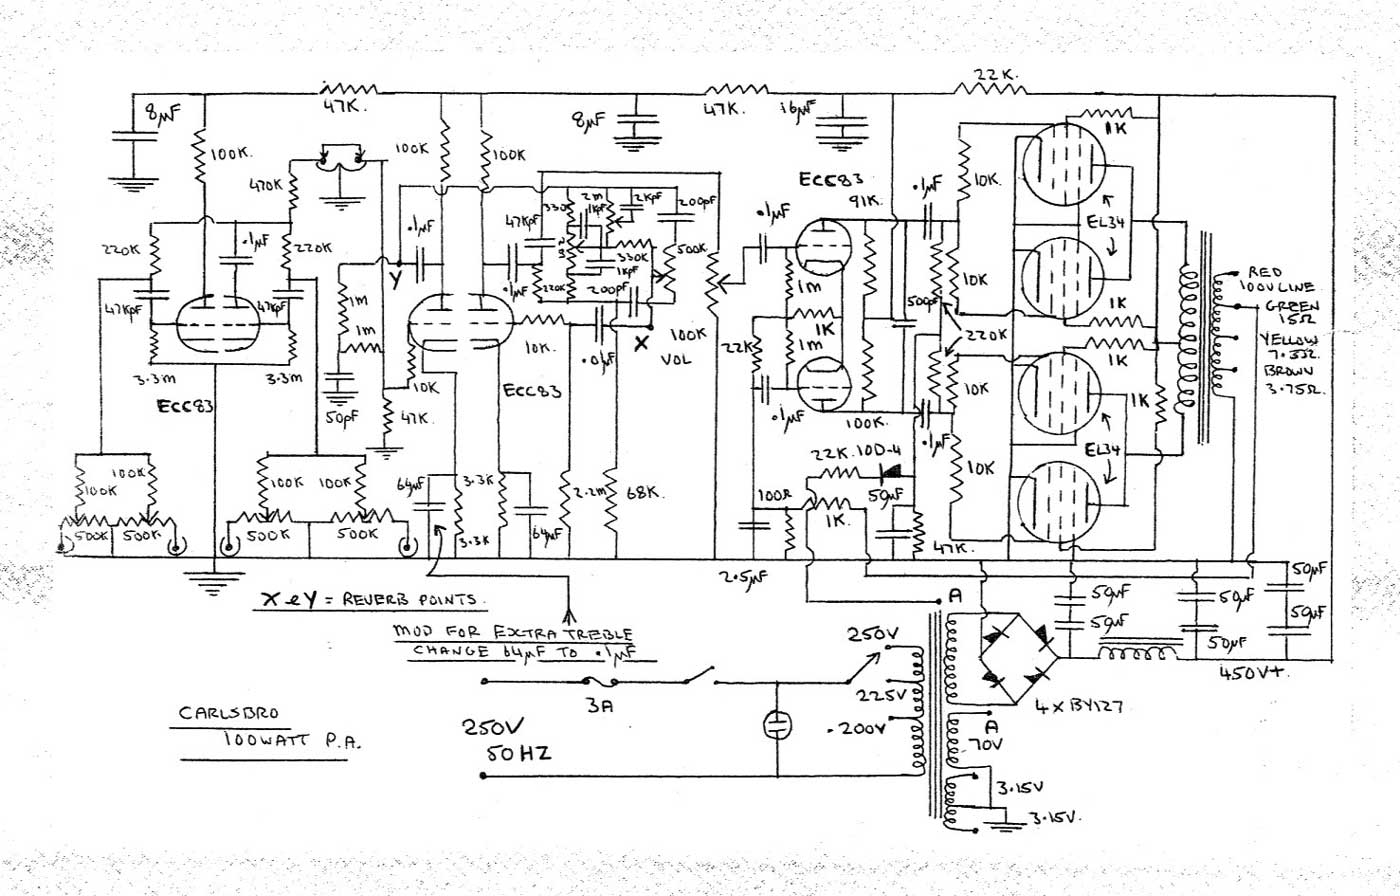 Pa 300 Wiring Diagram Speaker Diagram Wiring Diagram ~ ODICIS